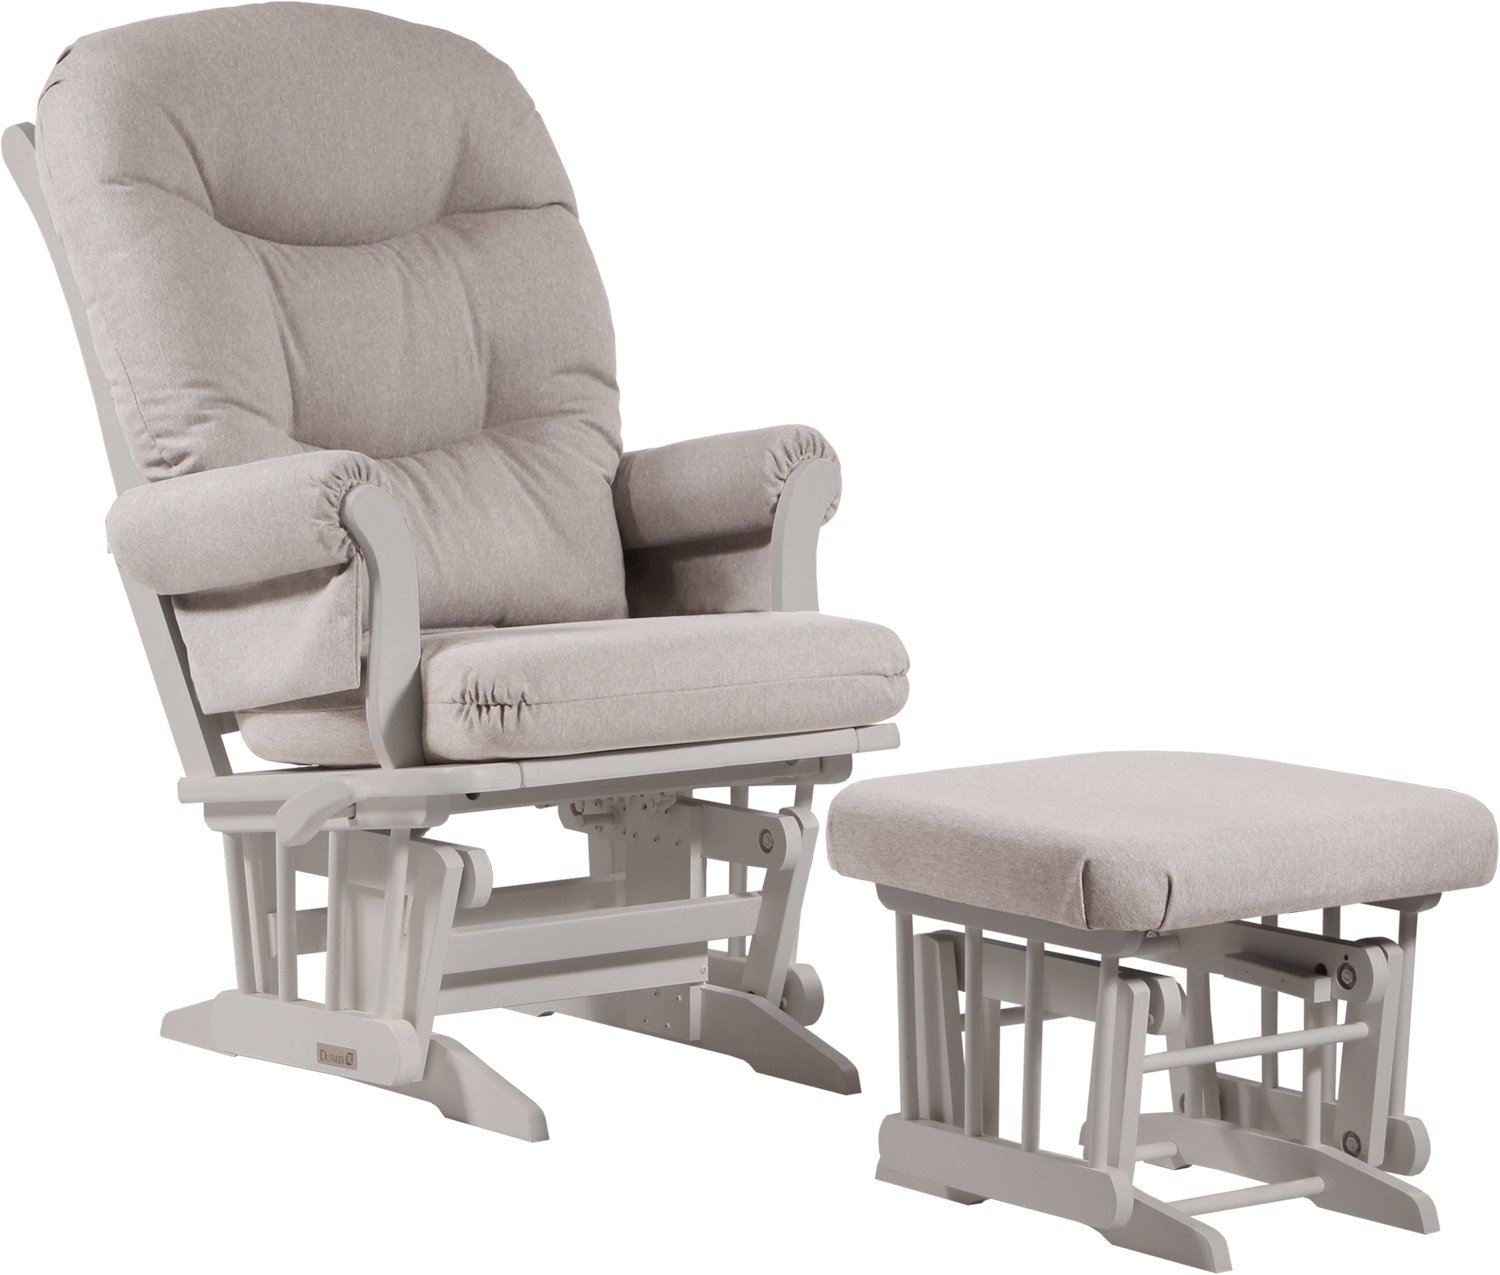 Non toxic gliders and rocking chairs for your nursery for Chaise dutailier